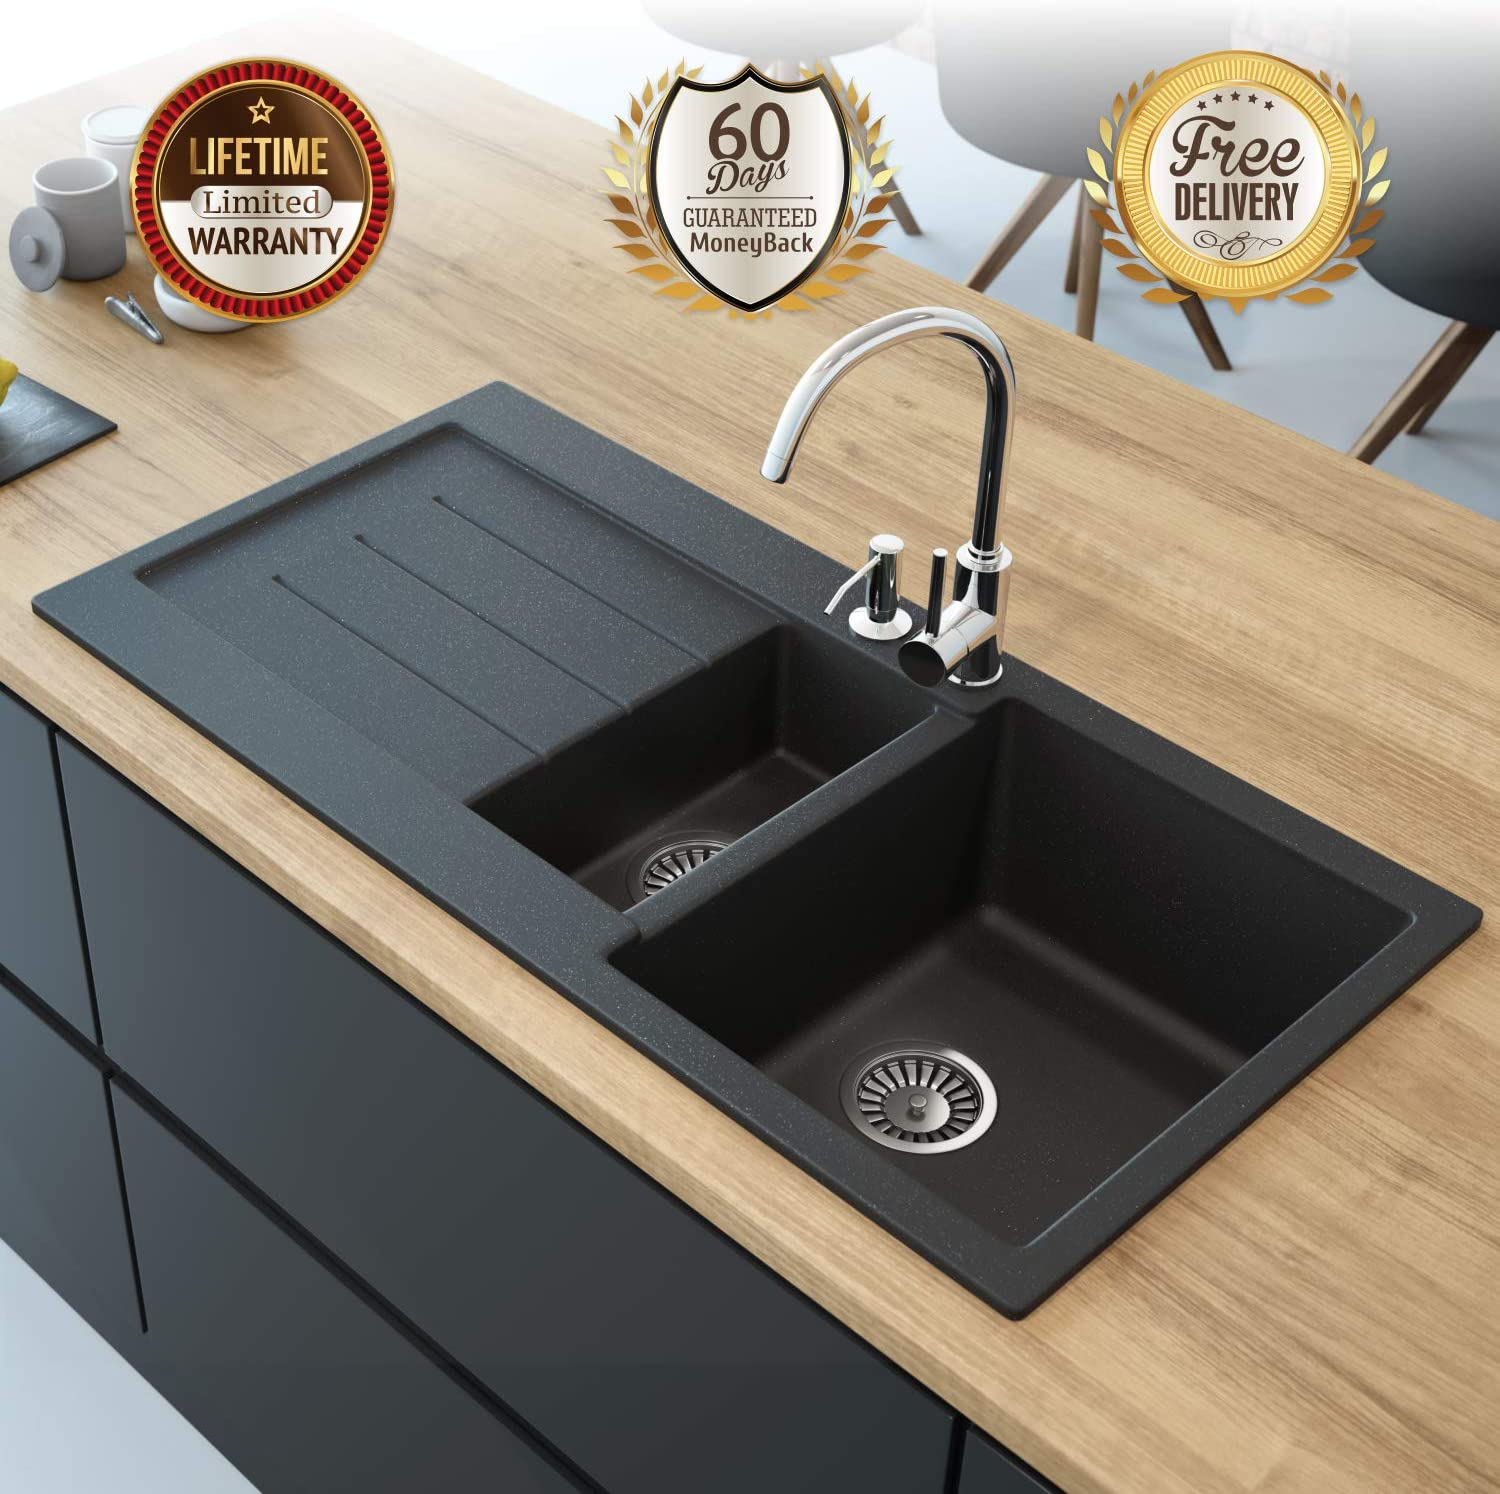 Black Kitchen Sink Lavello Decoro 150LT 39\